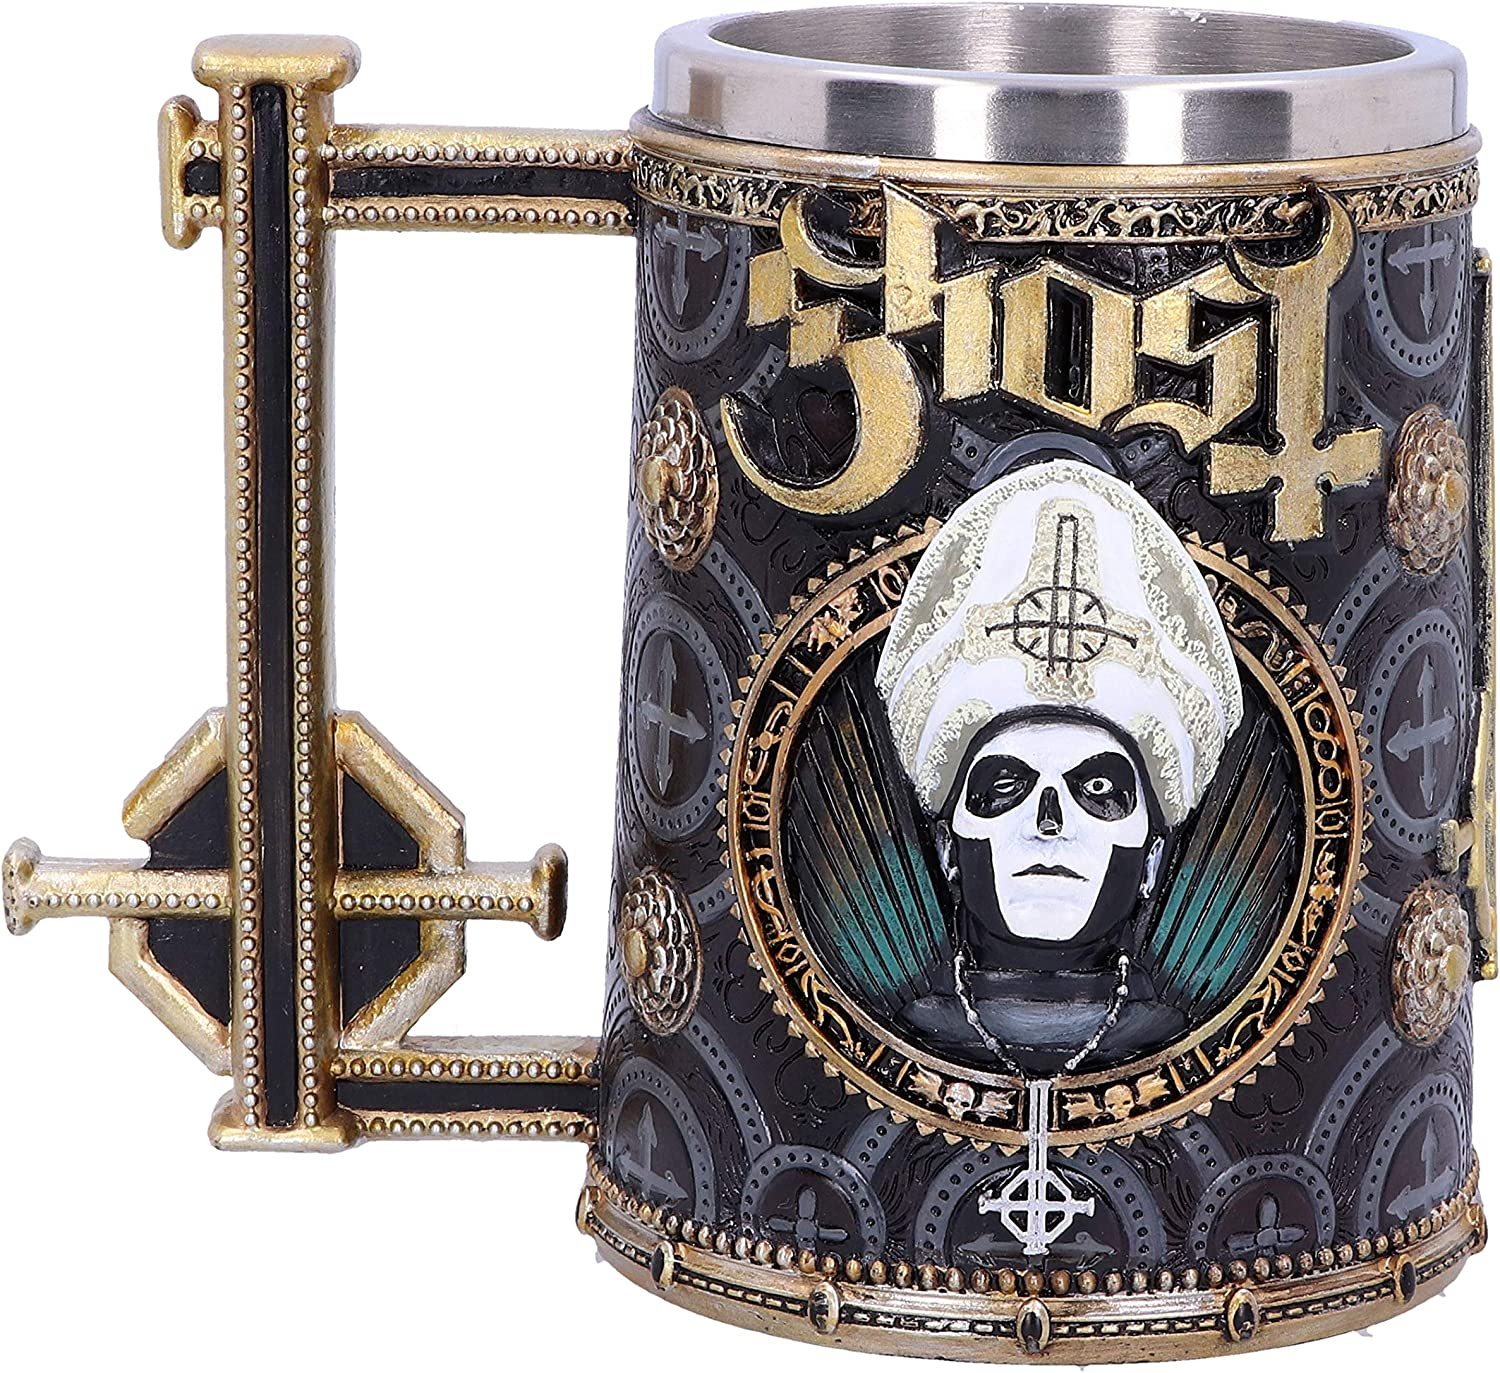 Nemesis Now Ghost Goblet Gold Meliora Calici Tazze